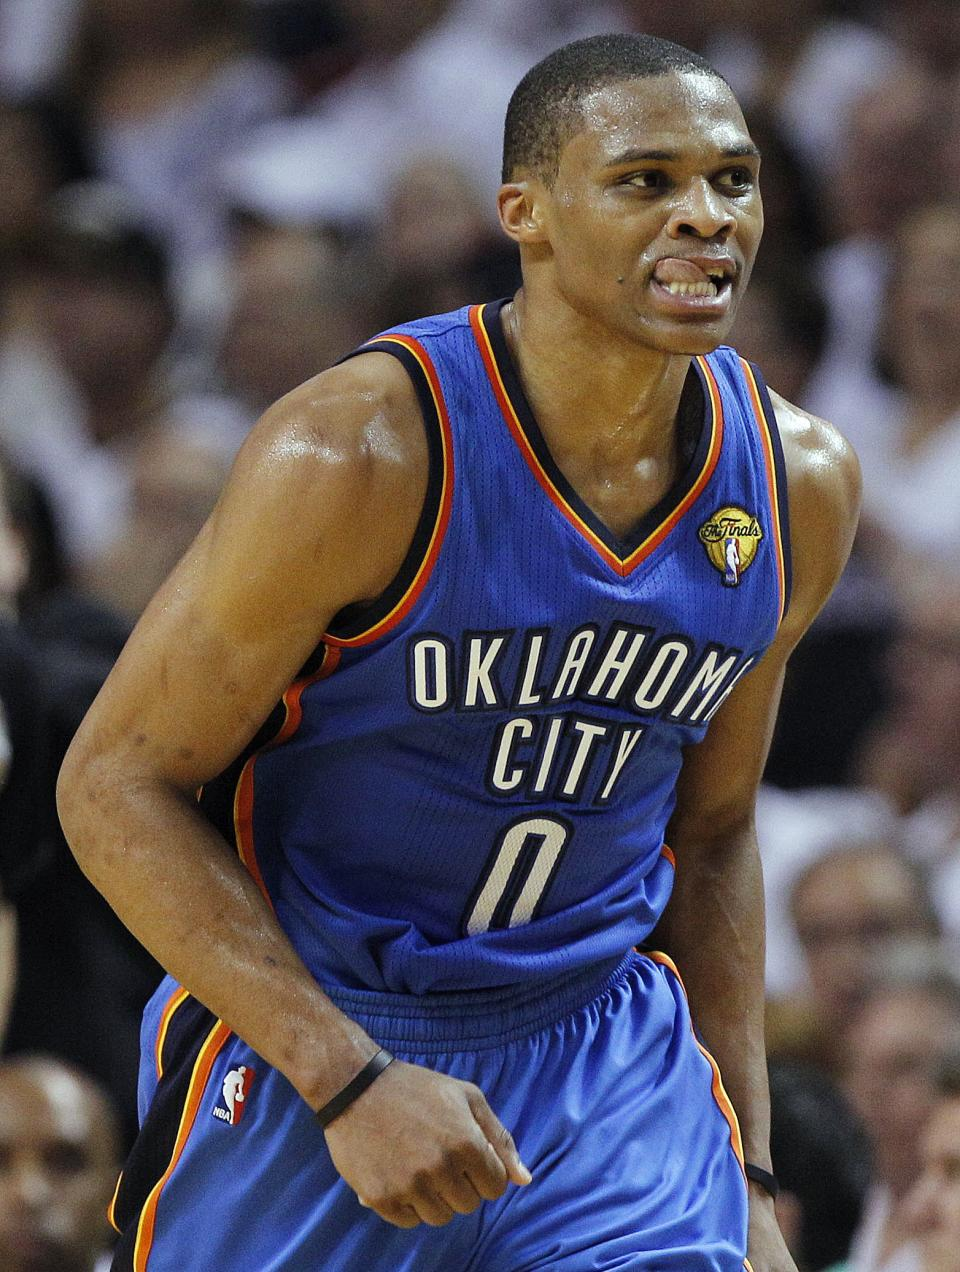 Oklahoma City Thunder point guard Russell Westbrook heads down the floor against the Miami Heat during the first half of Game 4 of the NBA Finals basketball series, Tuesday, June 19, 2012, in Miami.  (AP Photo/Lynne Sladky)